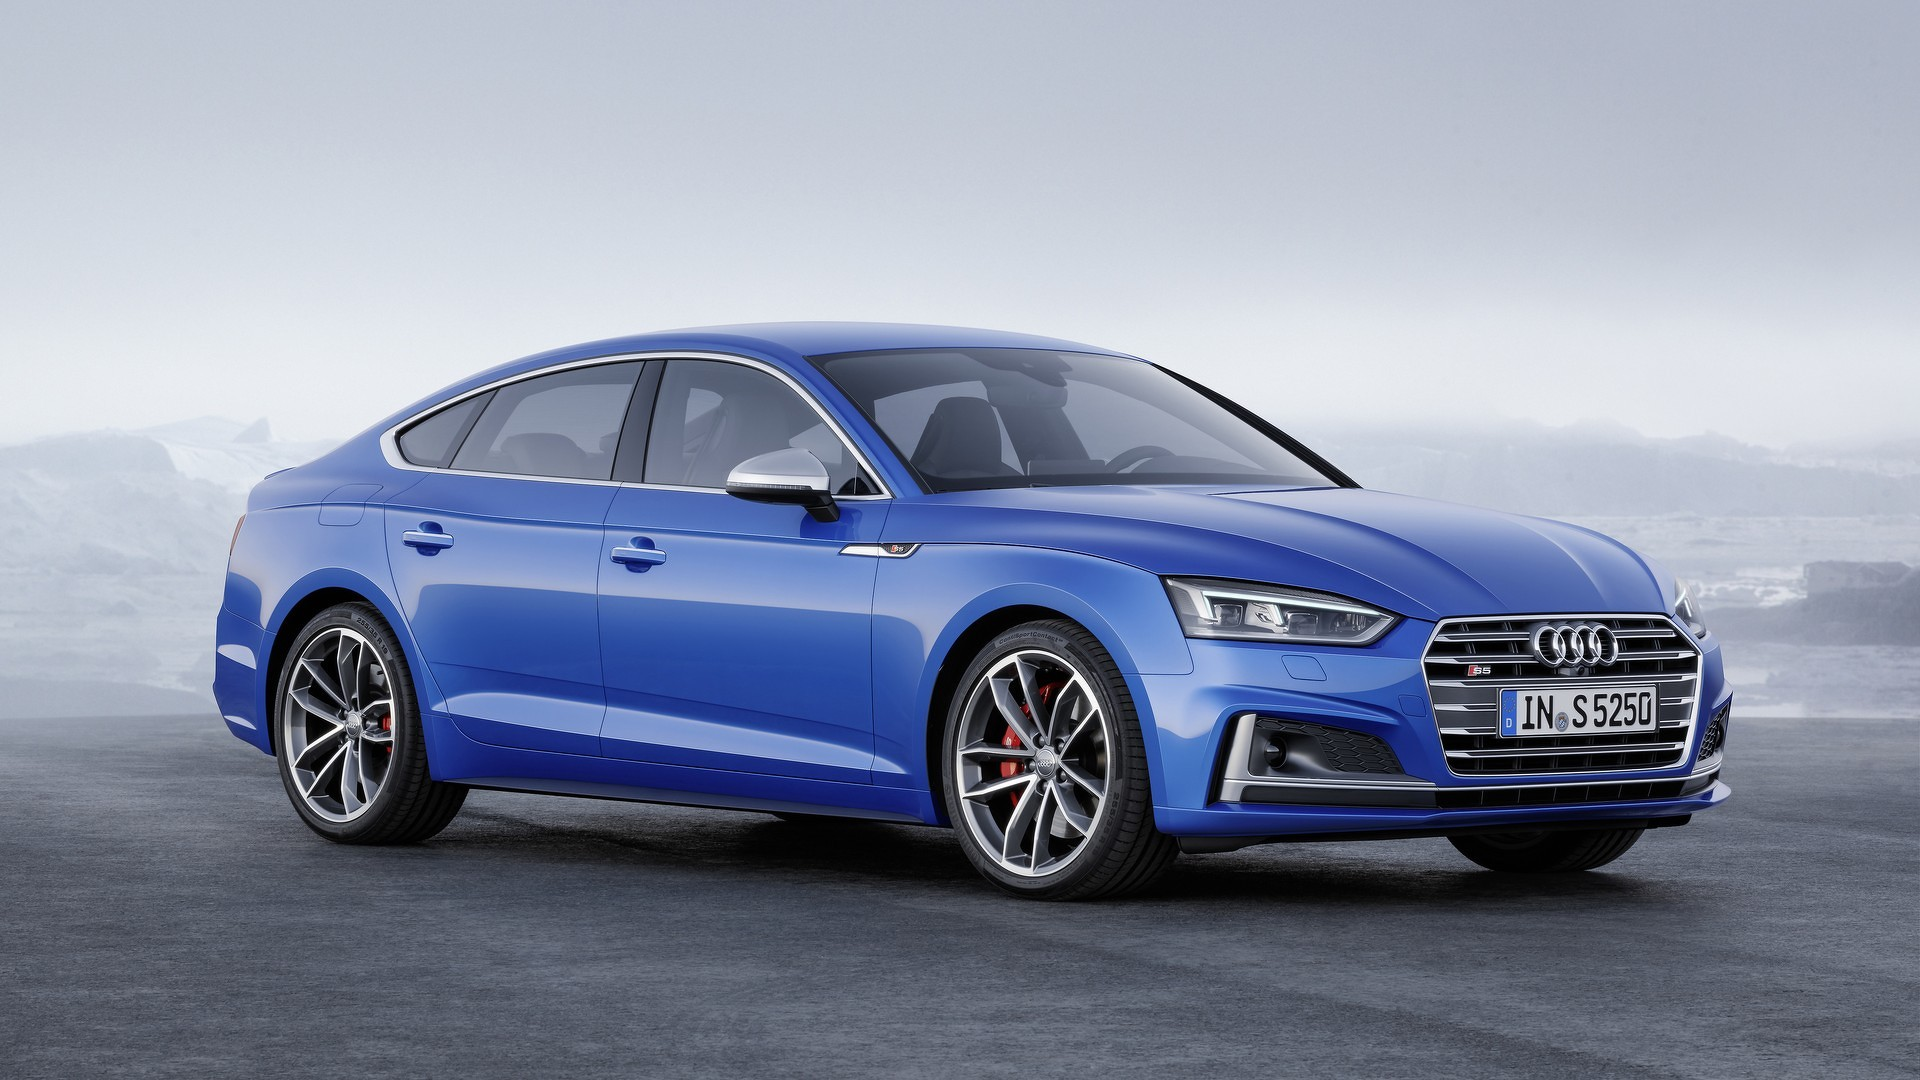 2018 Audi A5 Sportback revealed ahead of Paris debut